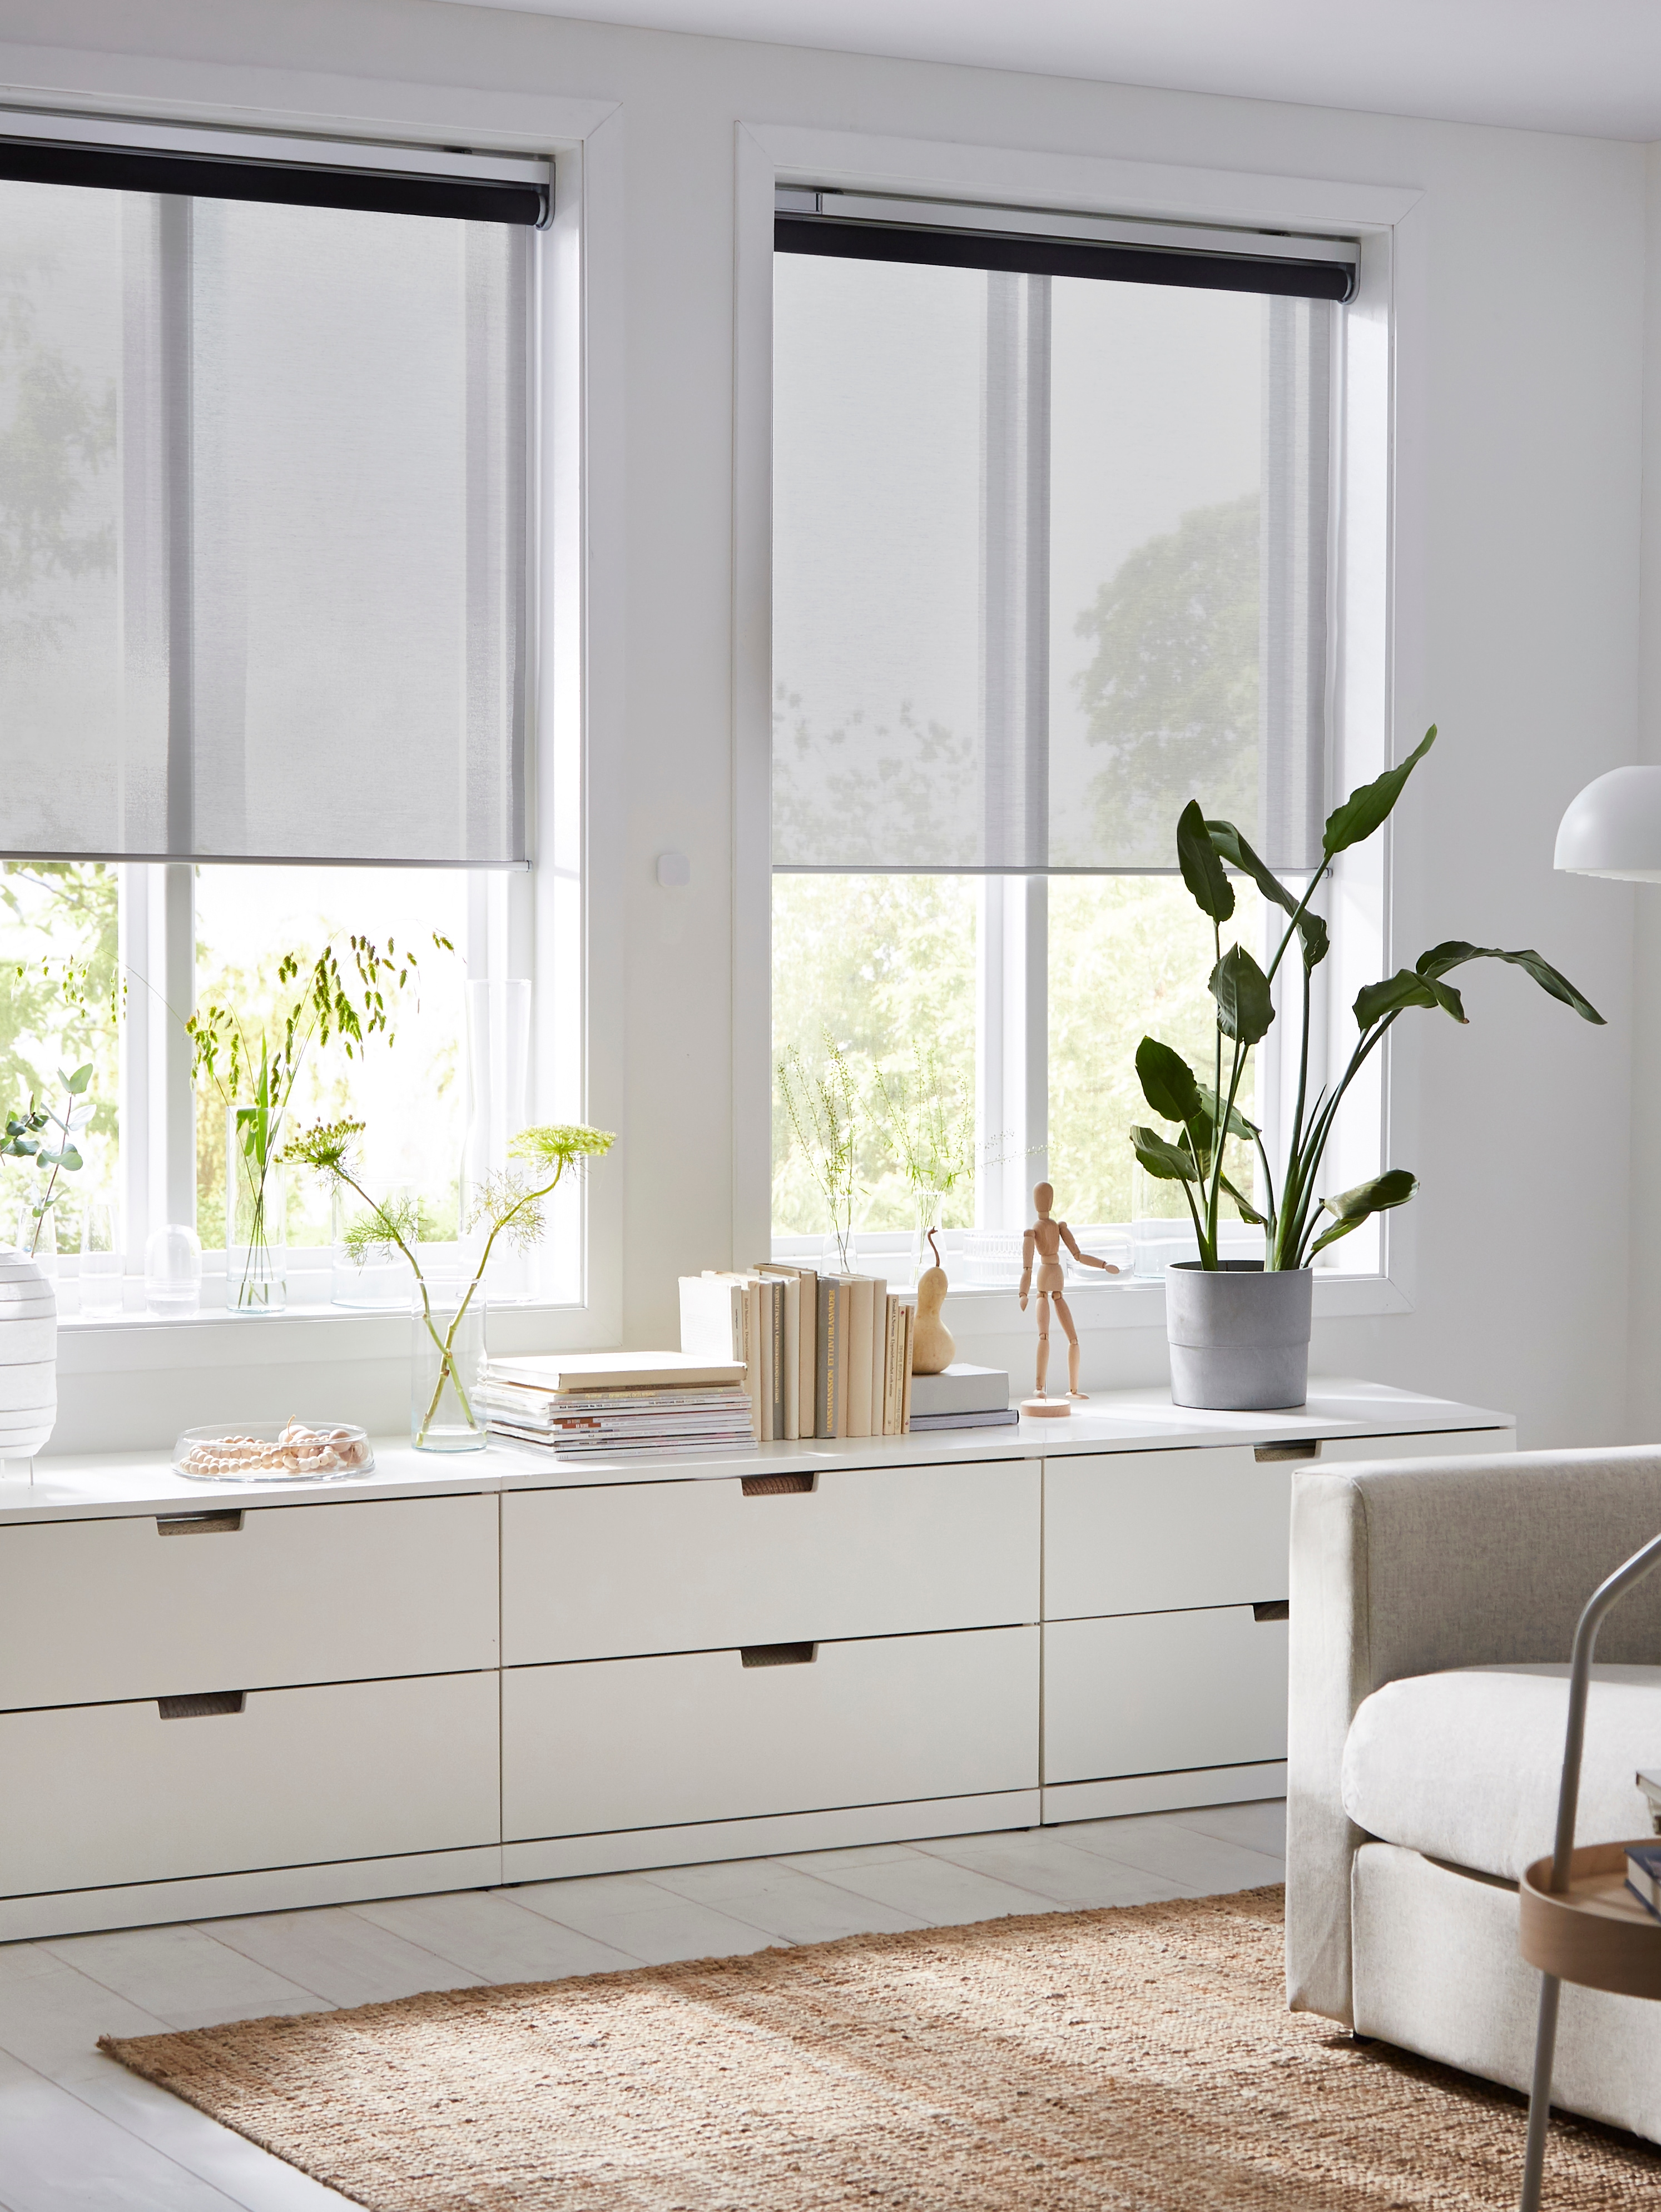 A living room with two windows covered in SKOGSKLÖVER blinds. Below the windows are three NORDLI drawer units holding plants.